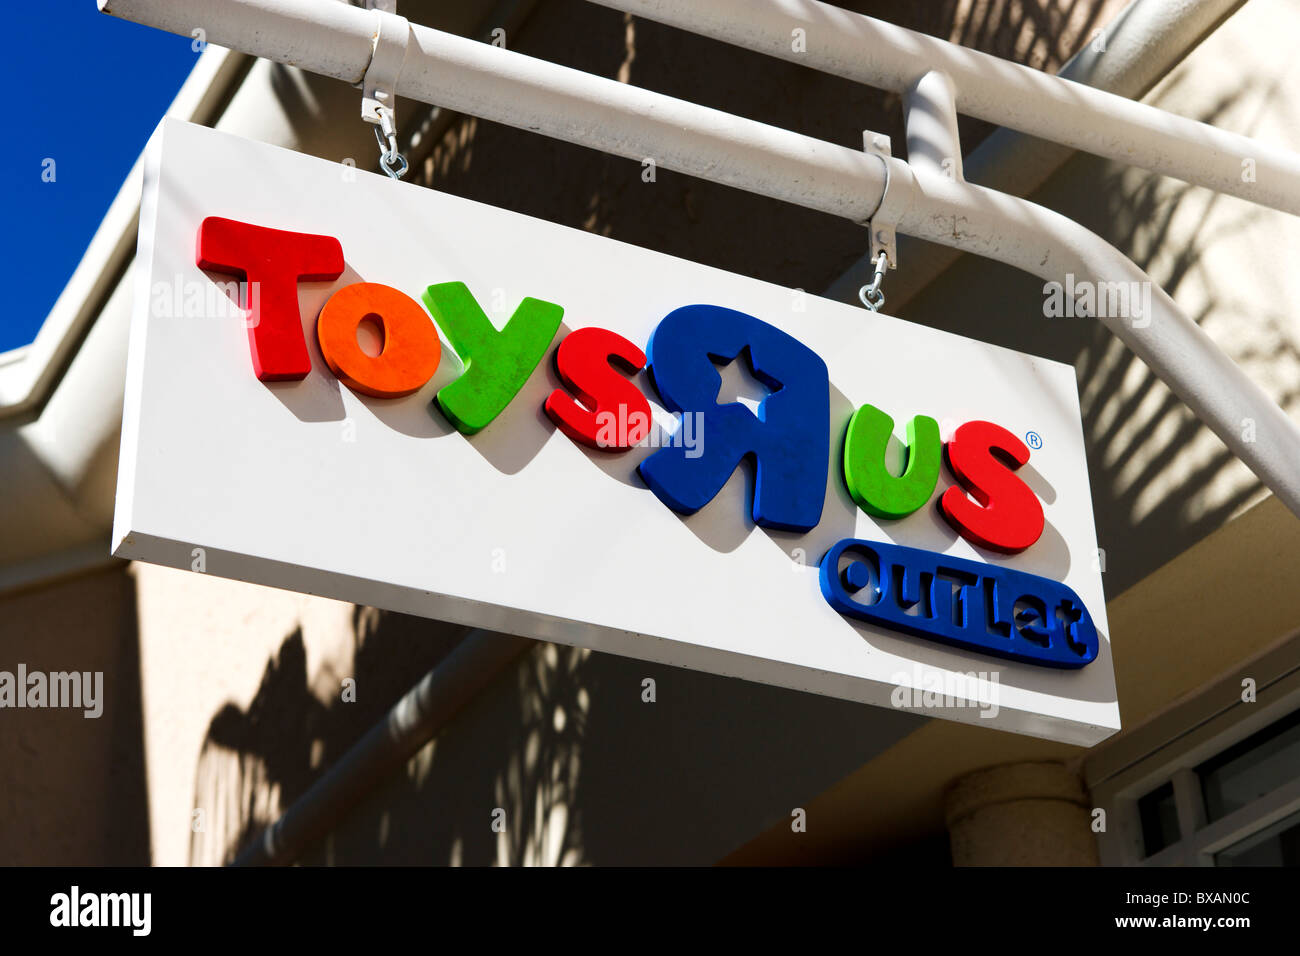 Toys Outlets 96